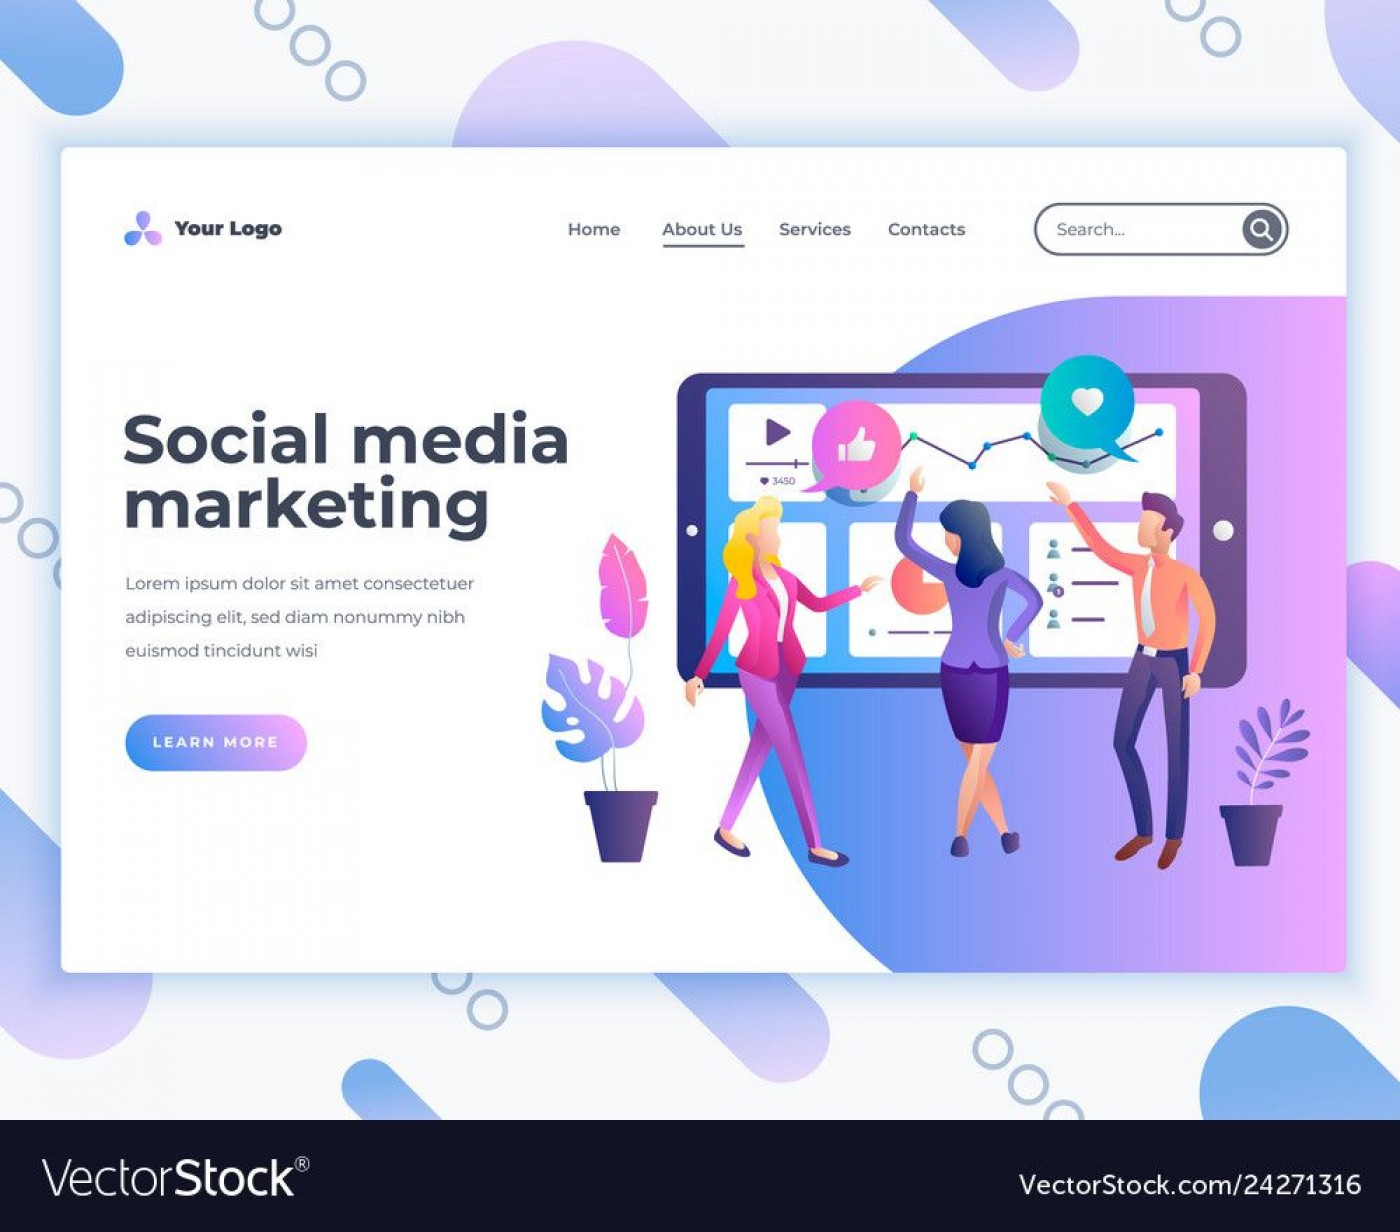 004 Awesome Social Media Marketing Template Highest Quality  Free Wordpres Ppt1400